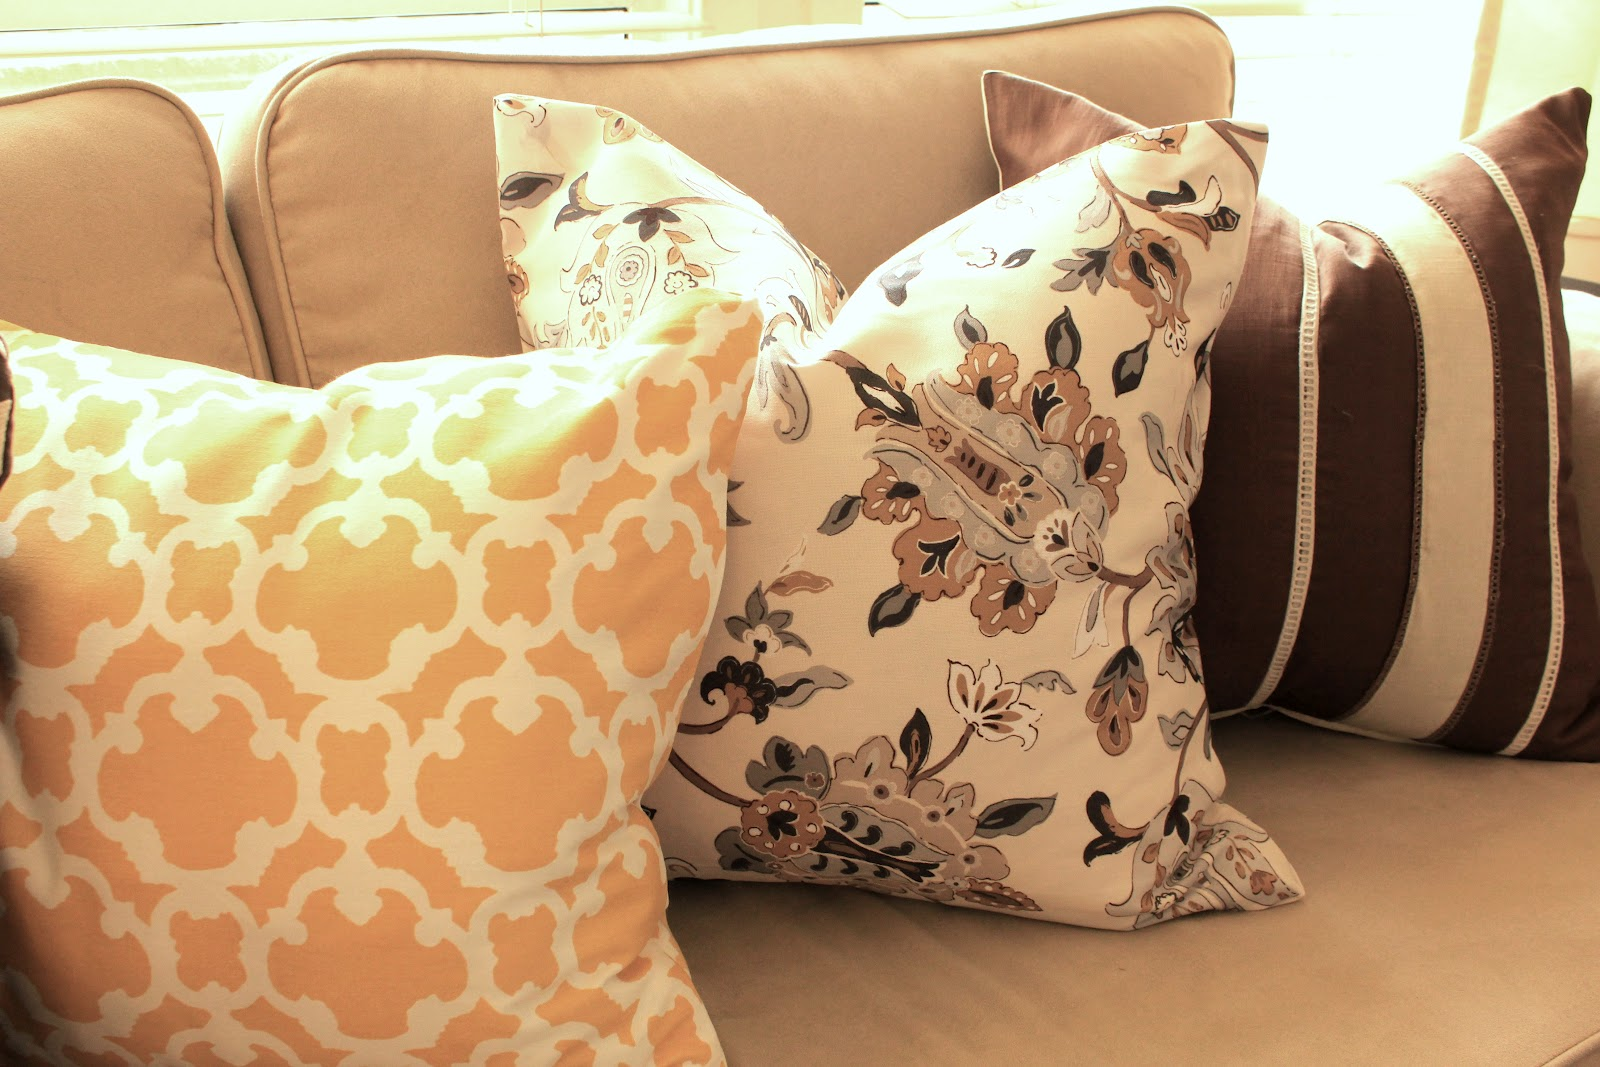 Diy Throw Pillow Cover No Sew : Cup Half Full: DIY - No Sew Throw Pillows